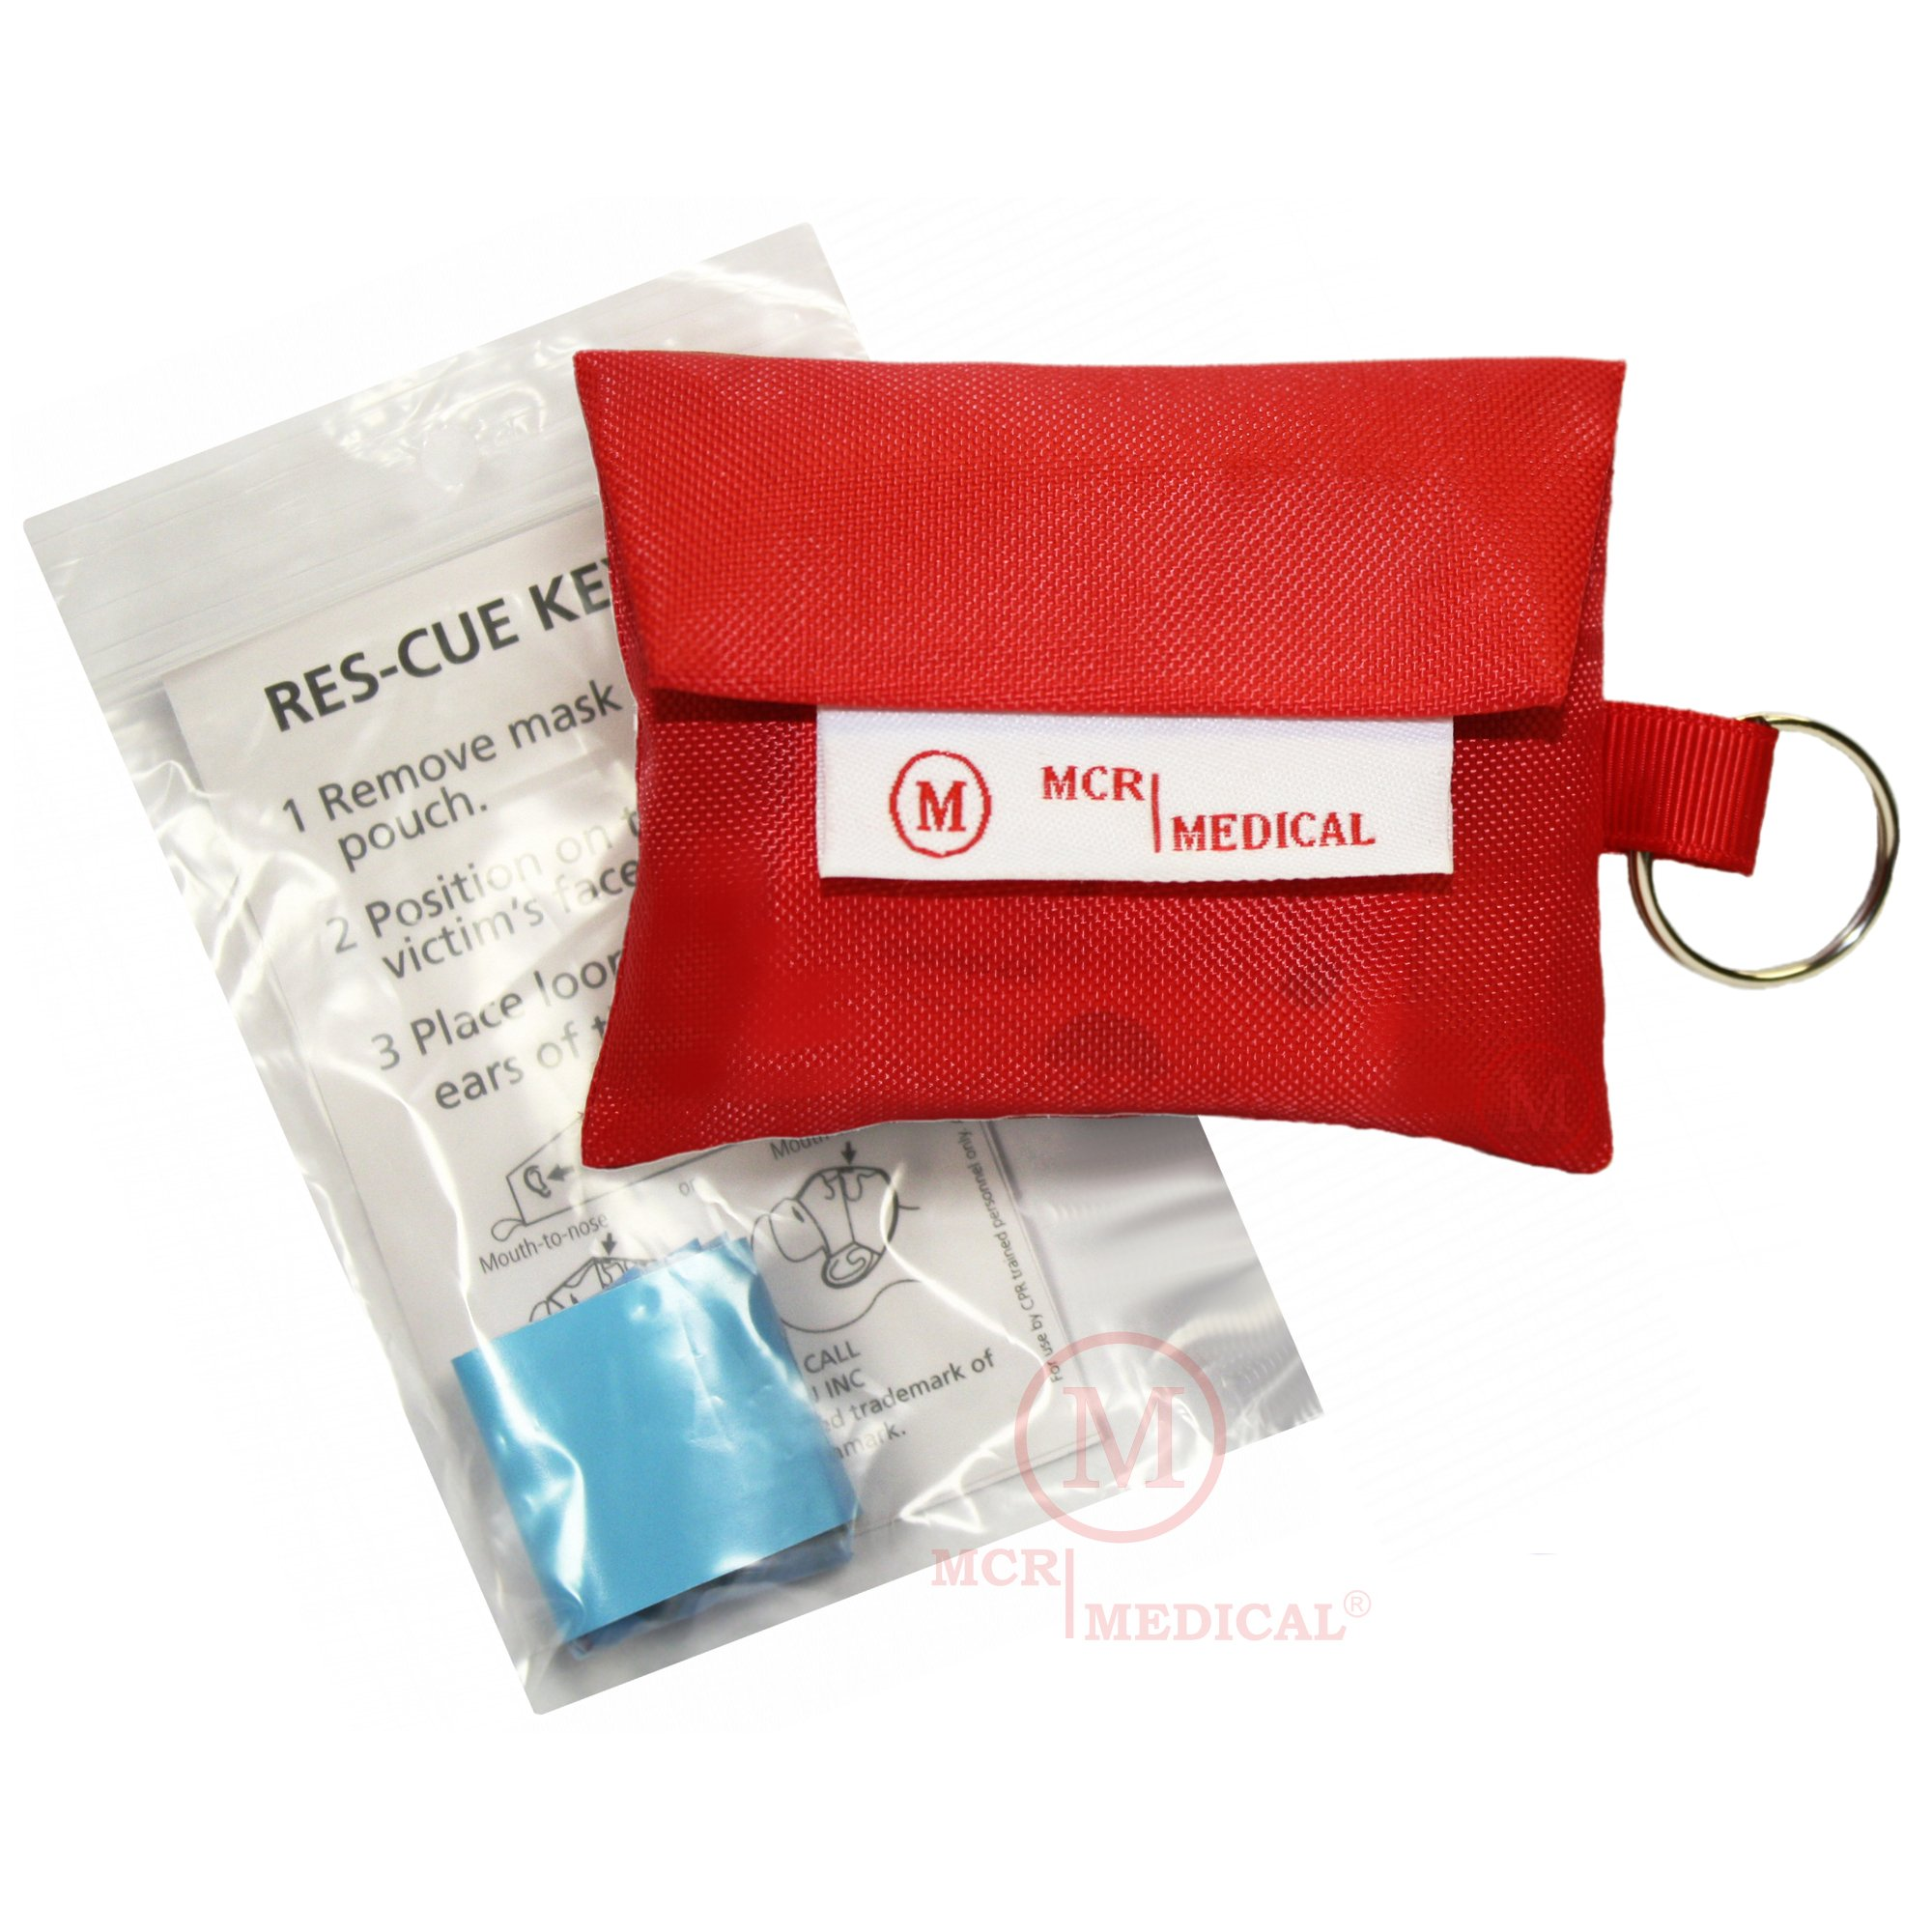 CPR Mask Keychains (Pack of 50), MCR Medical